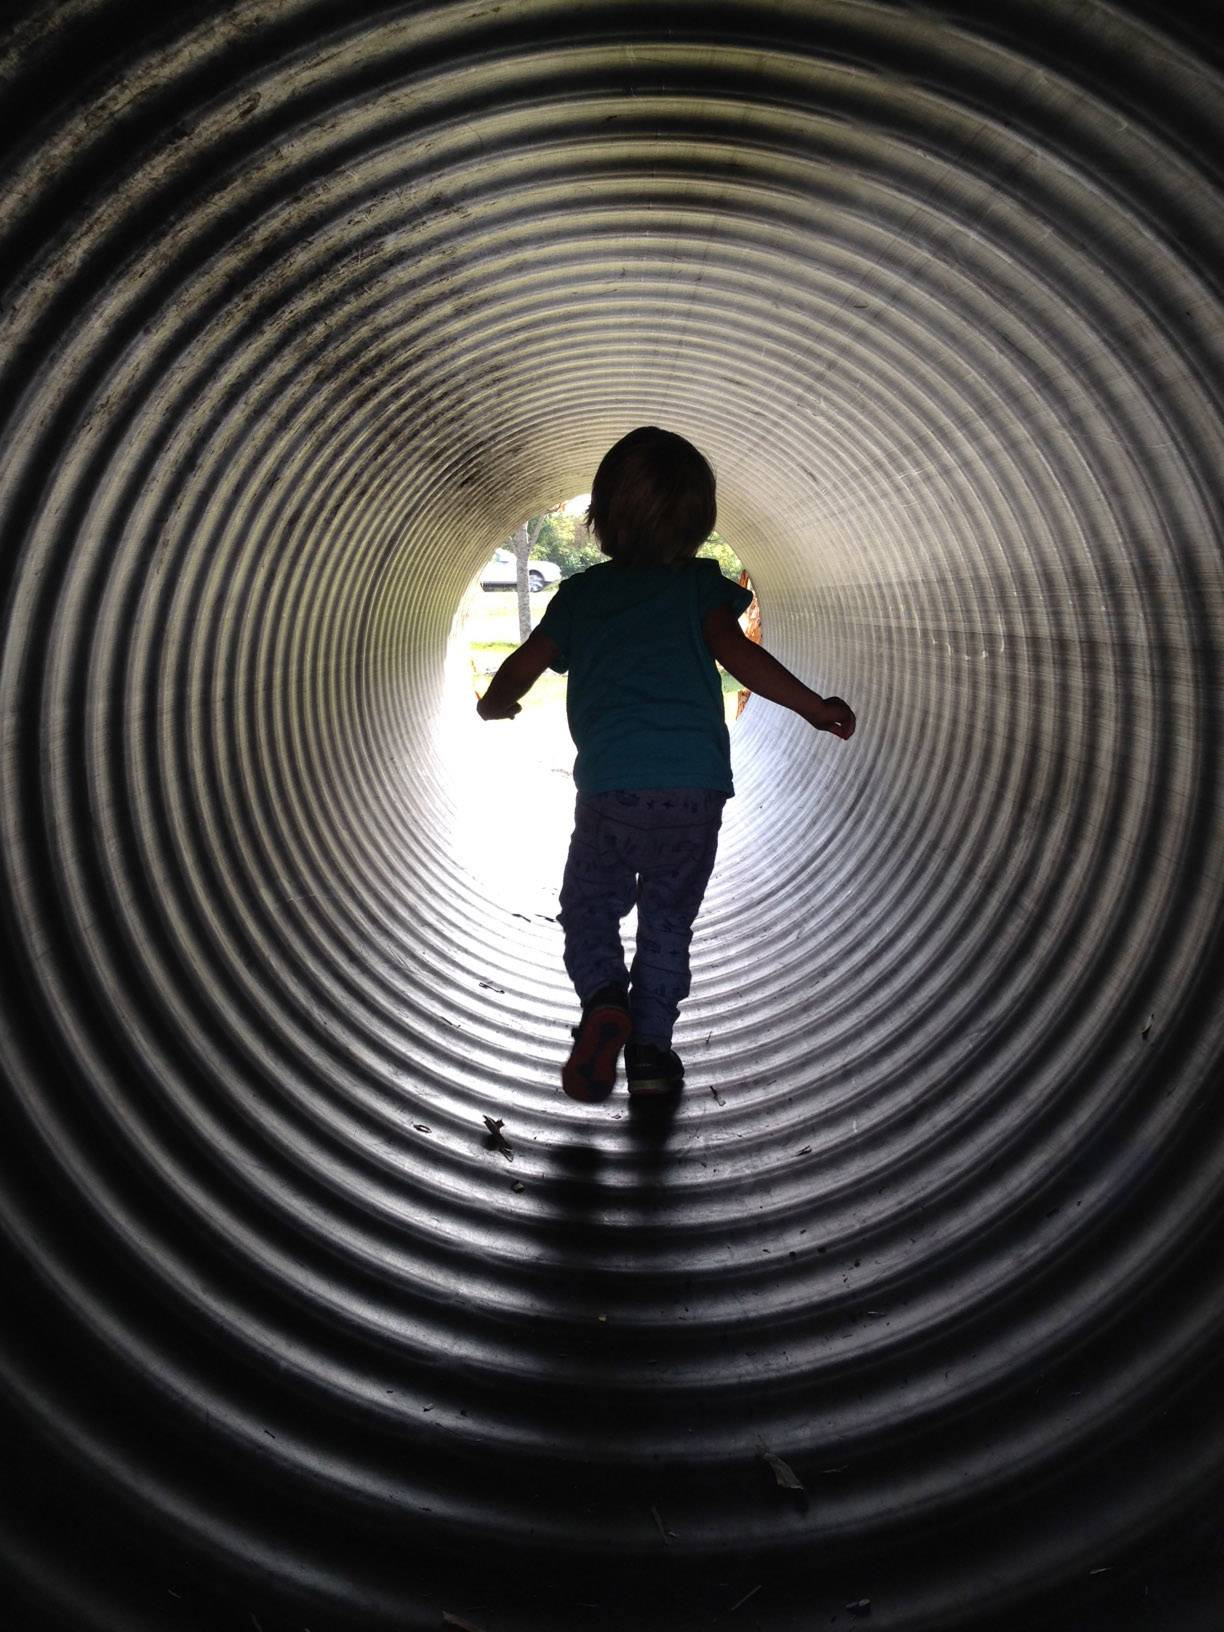 Three-year-old Leon Charles Rittmann dashes through a maze of large tubes at Goebbert's Pumpkin Farm in South Barrington earlier this month.